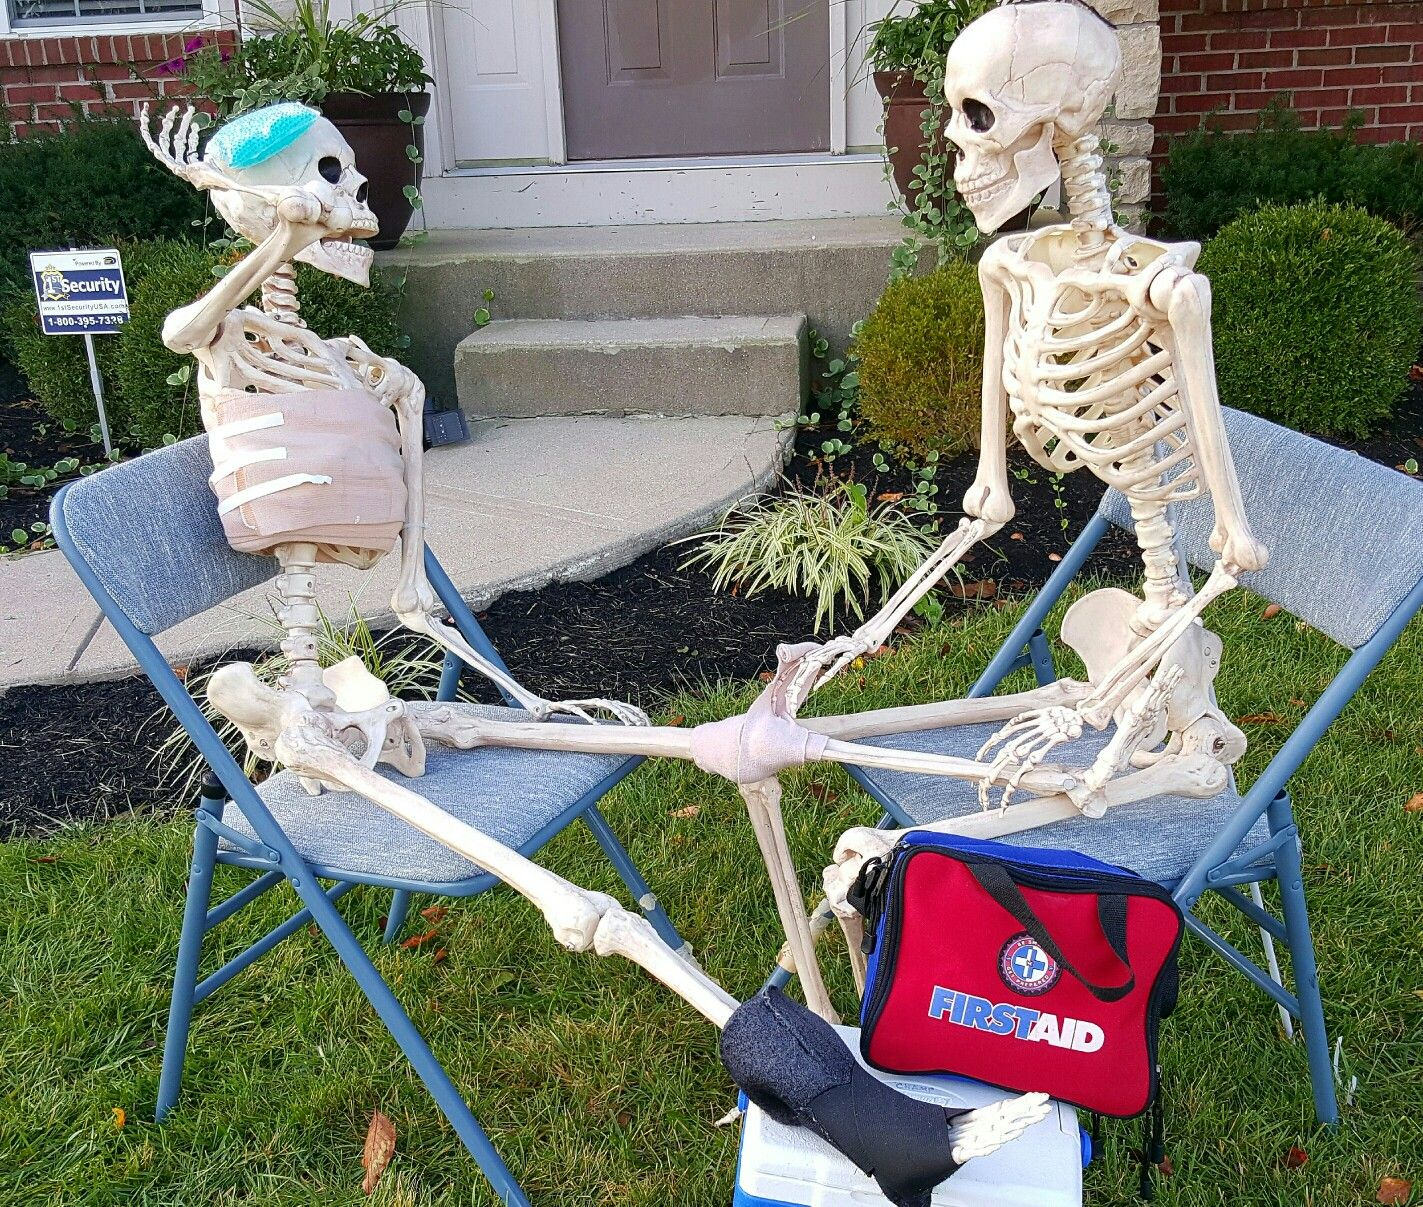 Pin by C Champ on The Adventures of Bob  Dorothy #thatboneybunch - halloween decoration ideas for yard